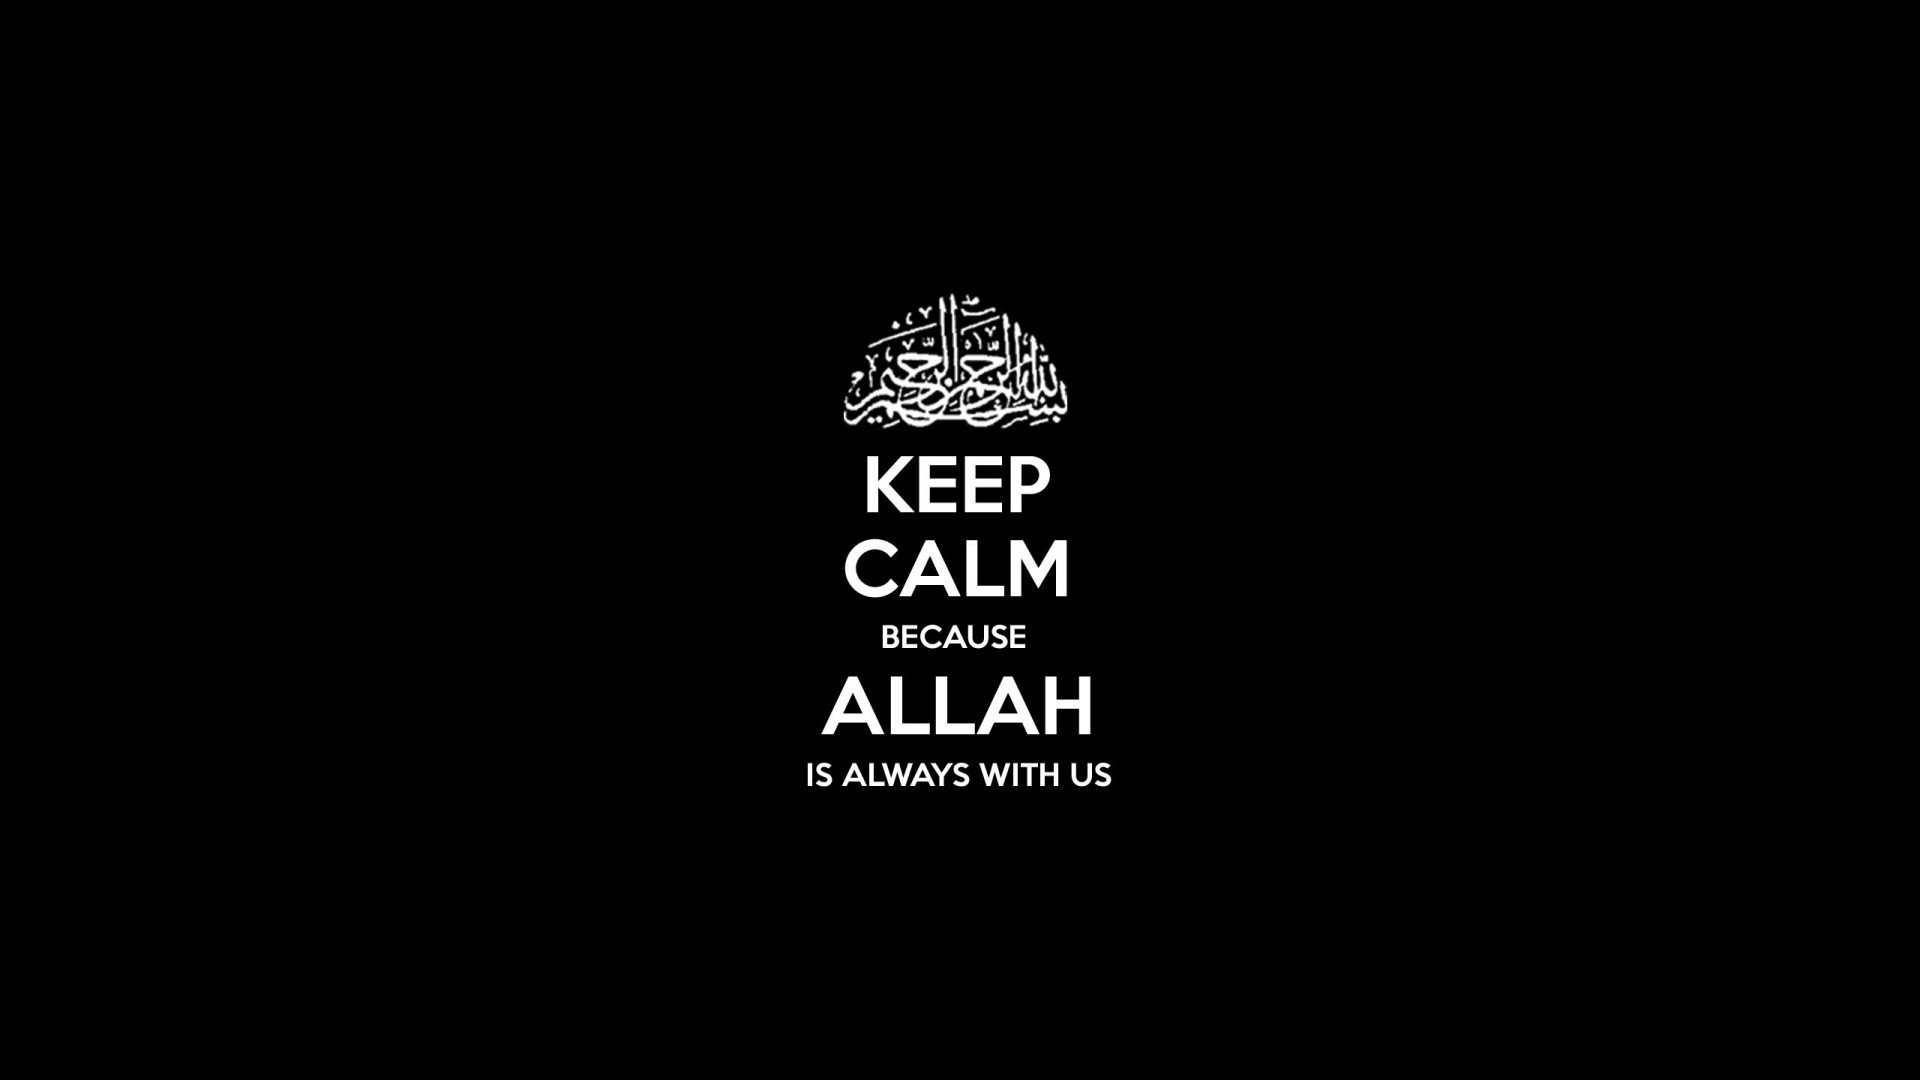 Calm And Allah Quotes Background HD Wallpaper Keep Calm And Allah HD 1920x1080